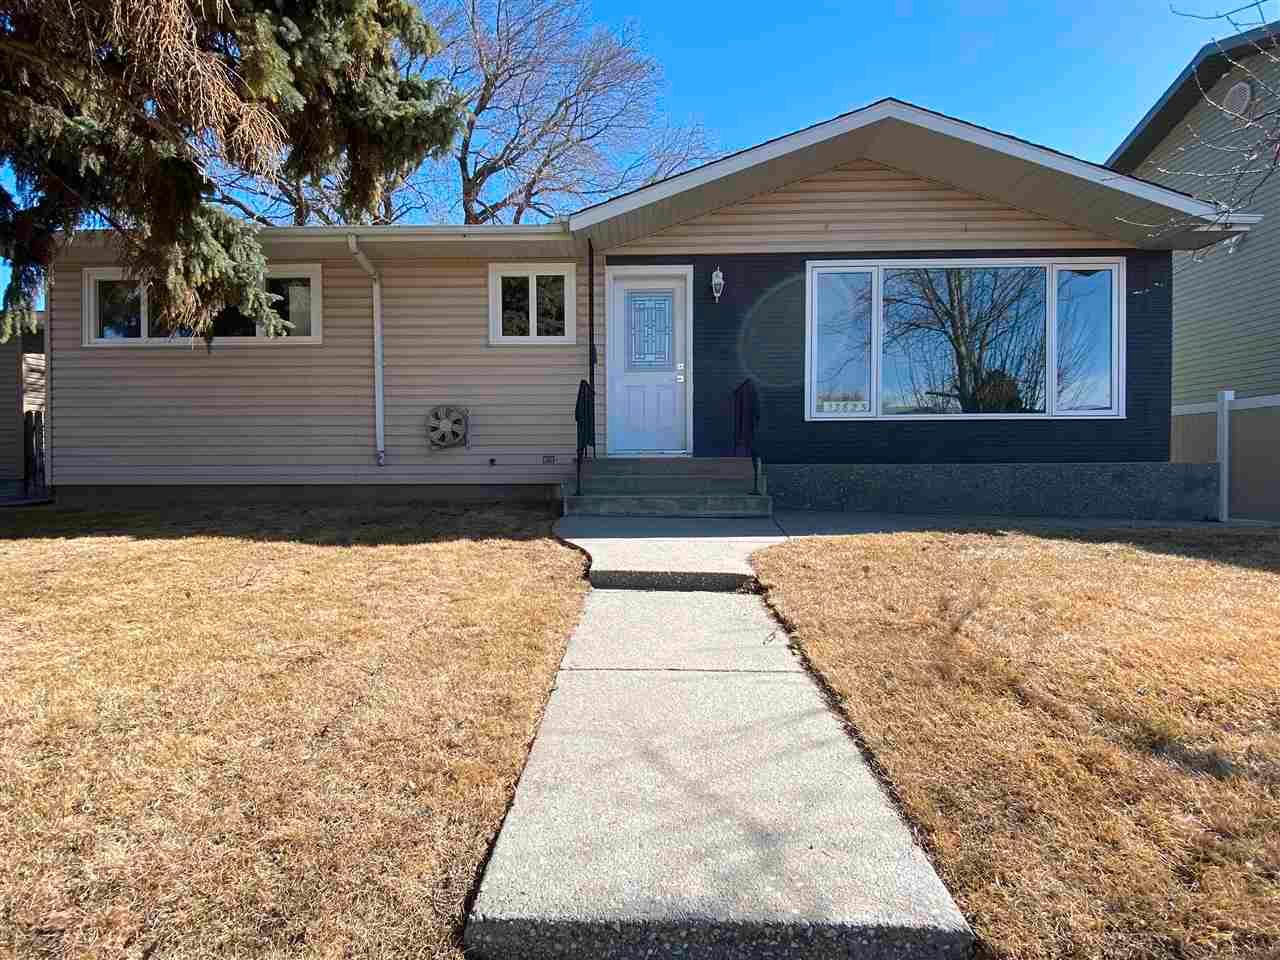 Main Photo: 13623 137 Street in Edmonton: Zone 01 House for sale : MLS®# E4238230